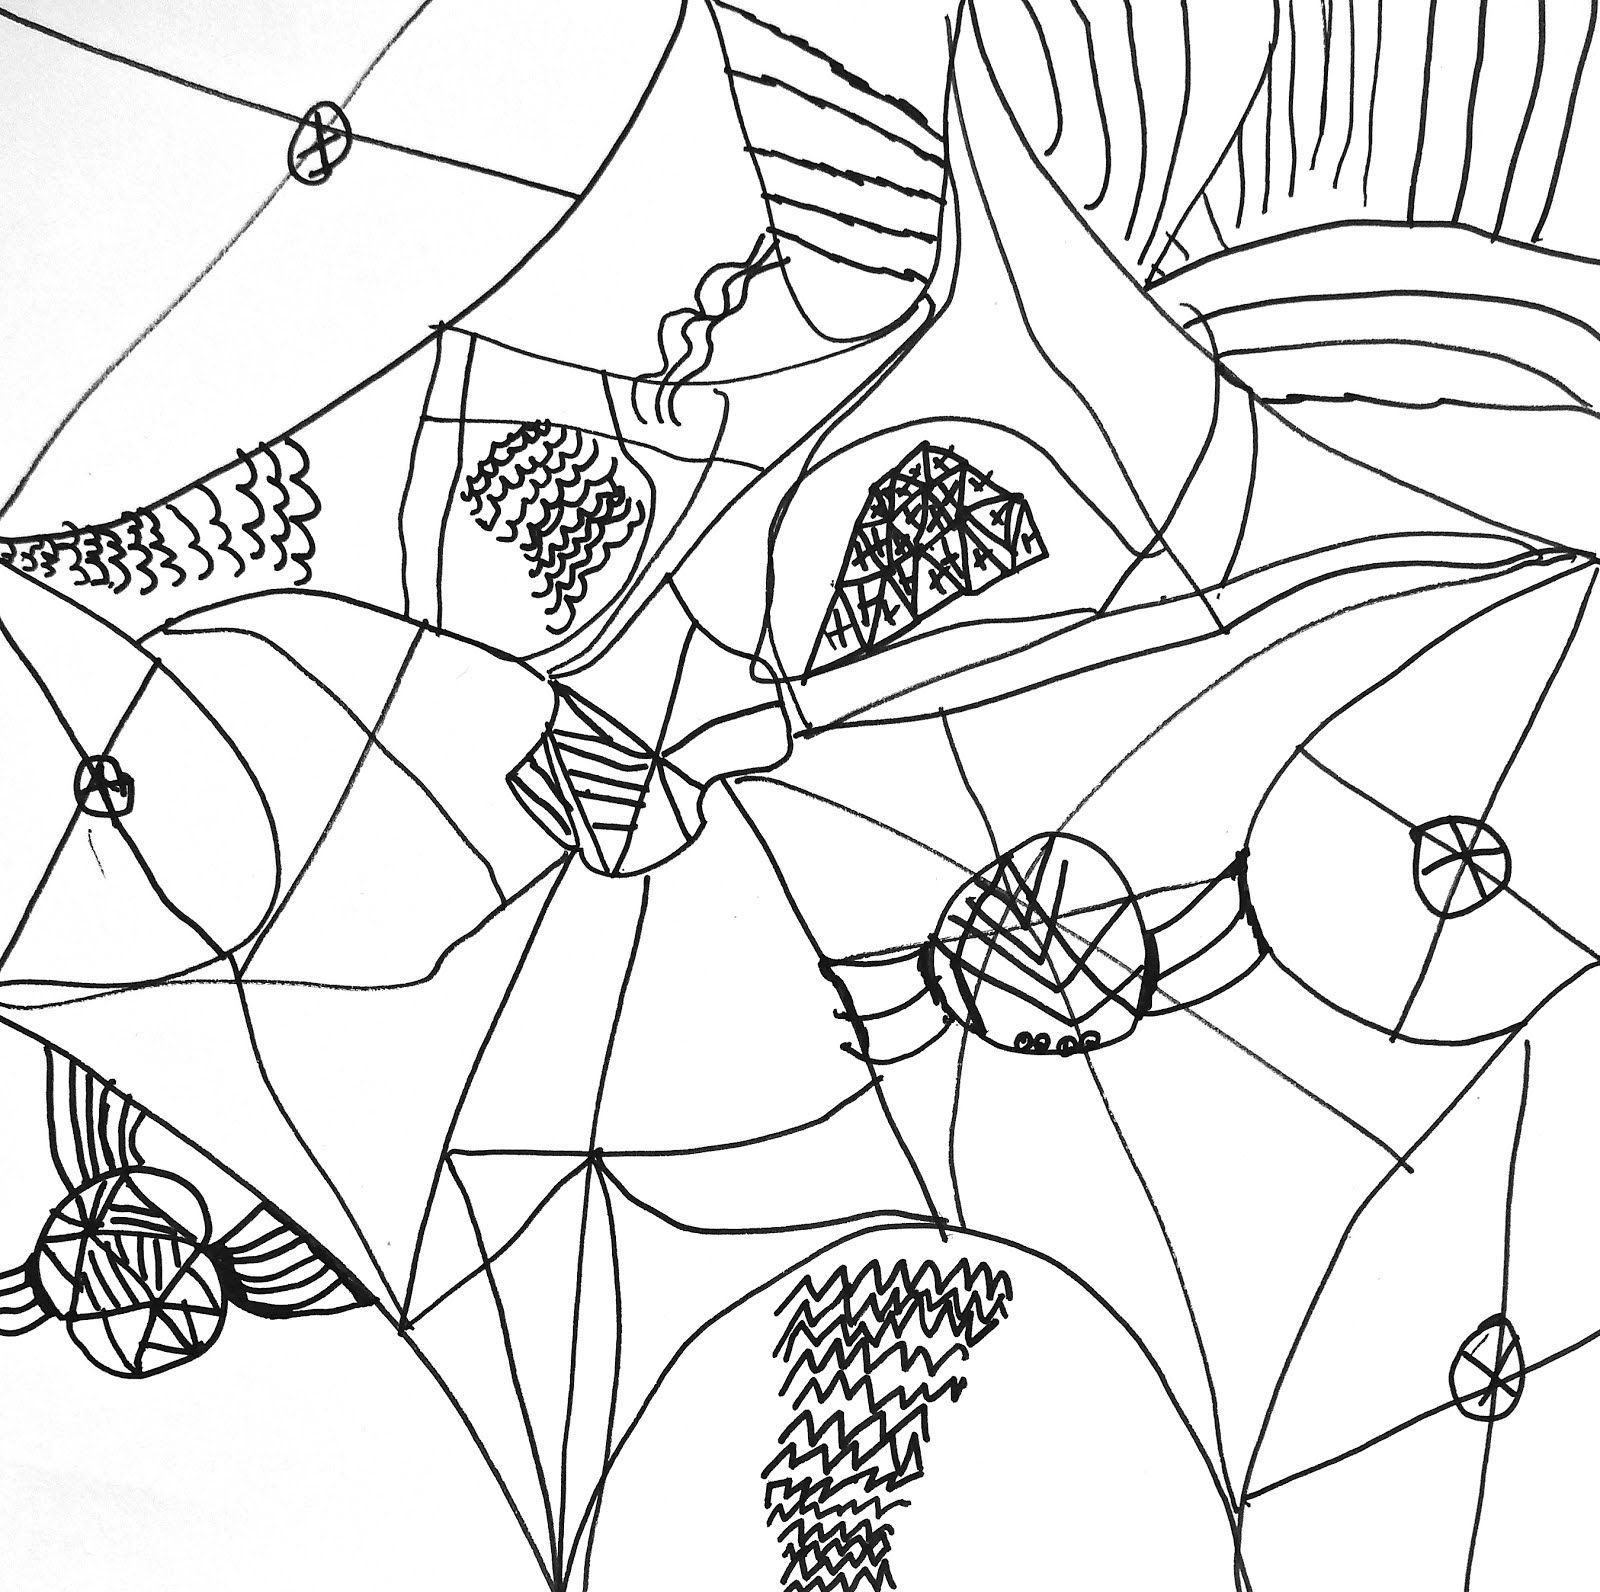 spider coloring page anansi the spider coloring page coloring home spider coloring page